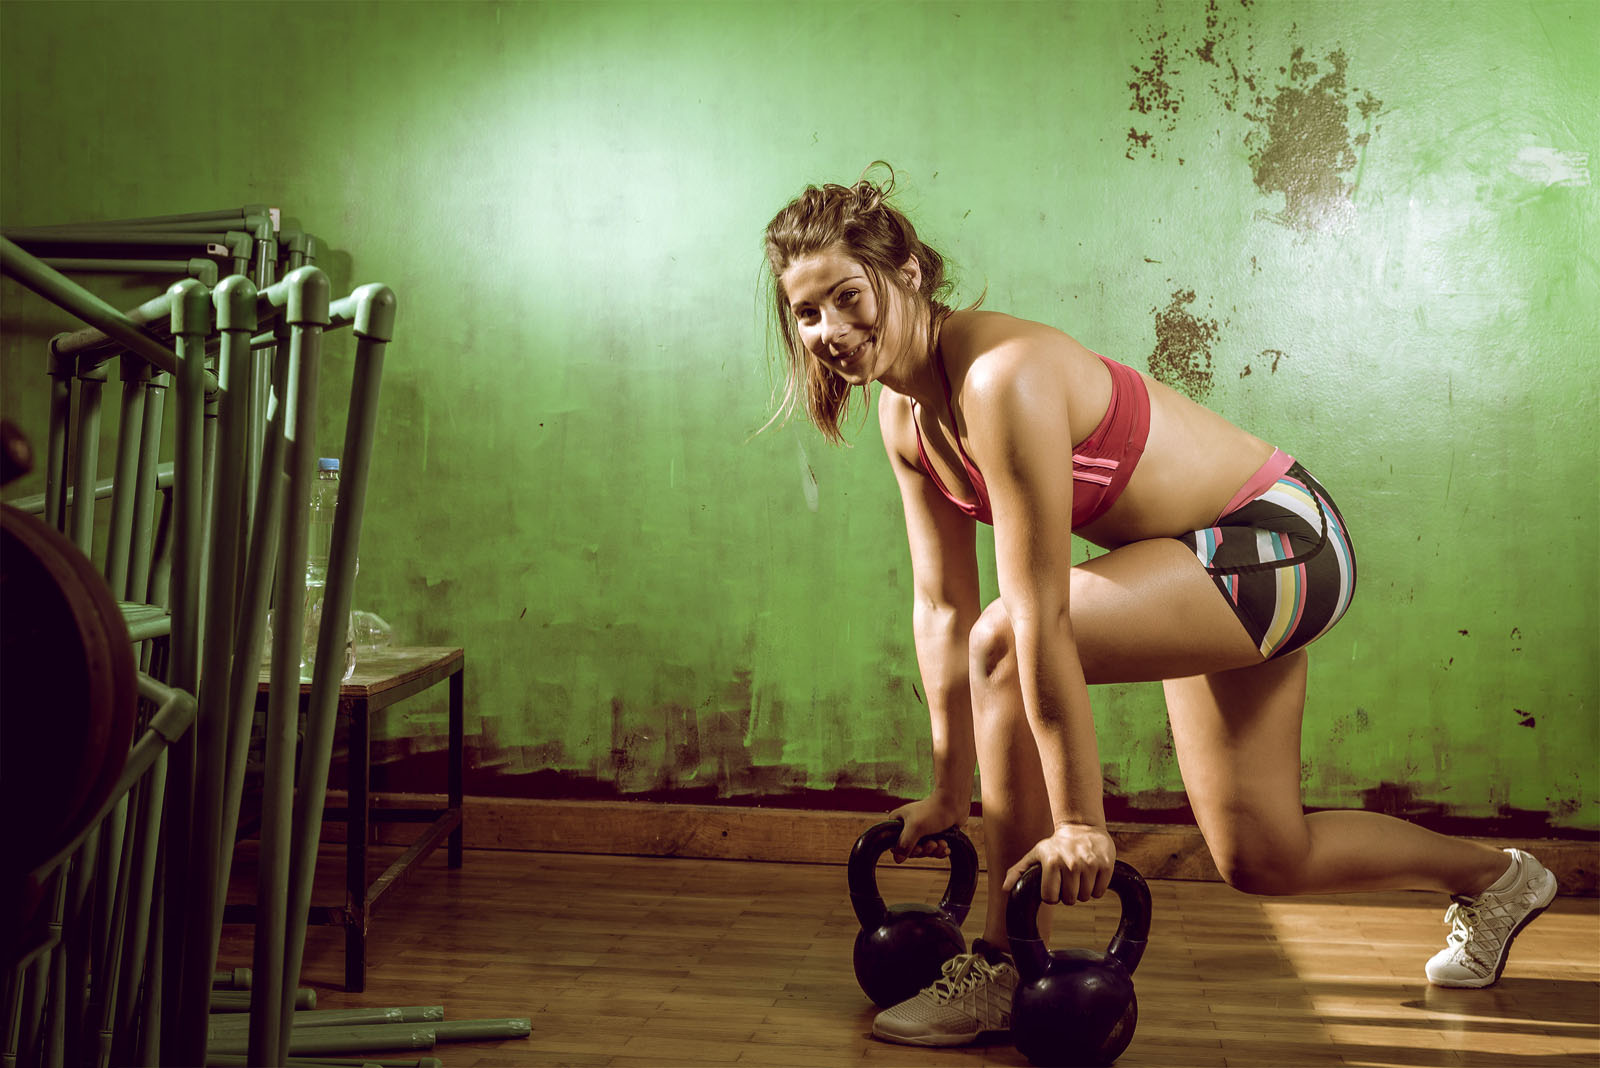 Quick Exercise Tips For Busy City Schedules